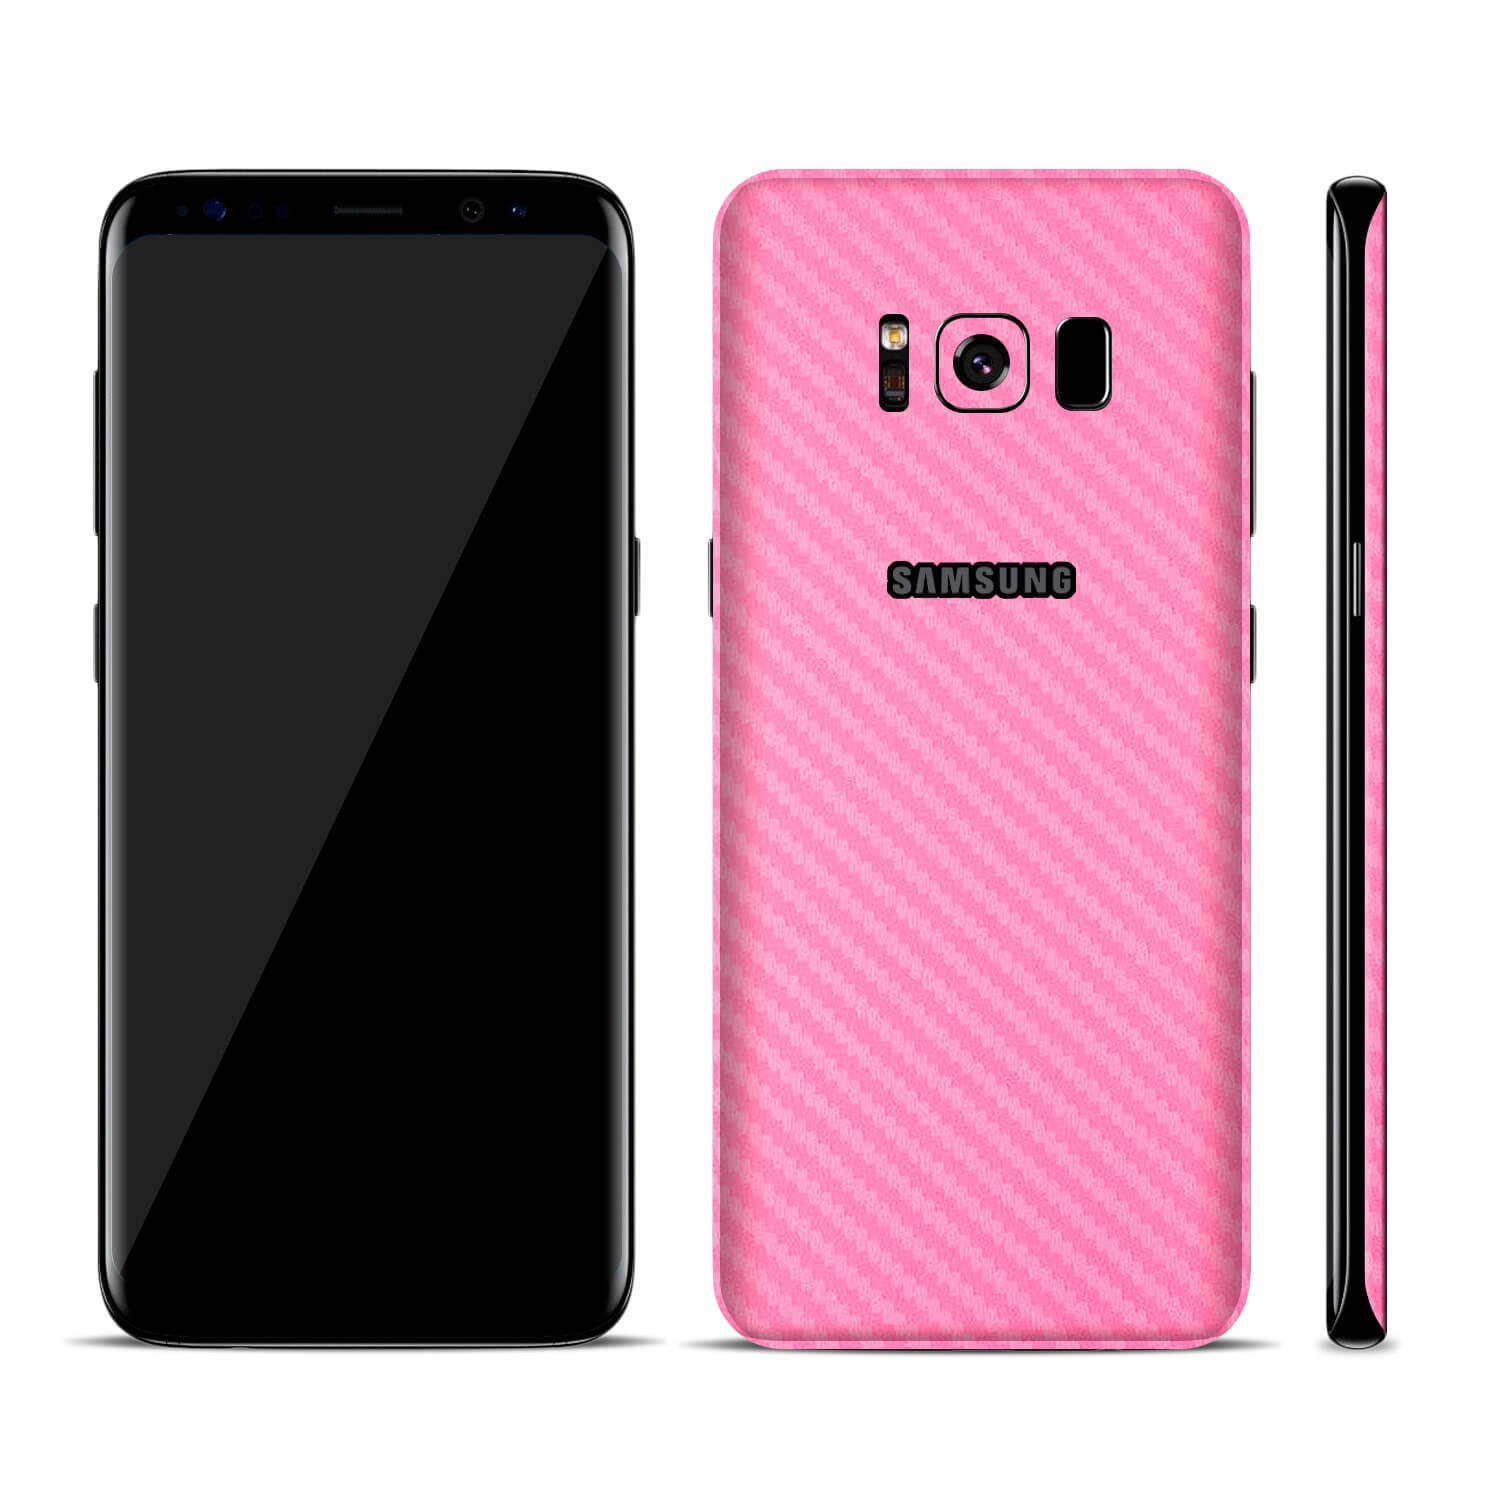 SmartSkins Textured Skin Sticker for SAMSUNG GALAXY S8 /& S8 Plus S8, Black Carbon